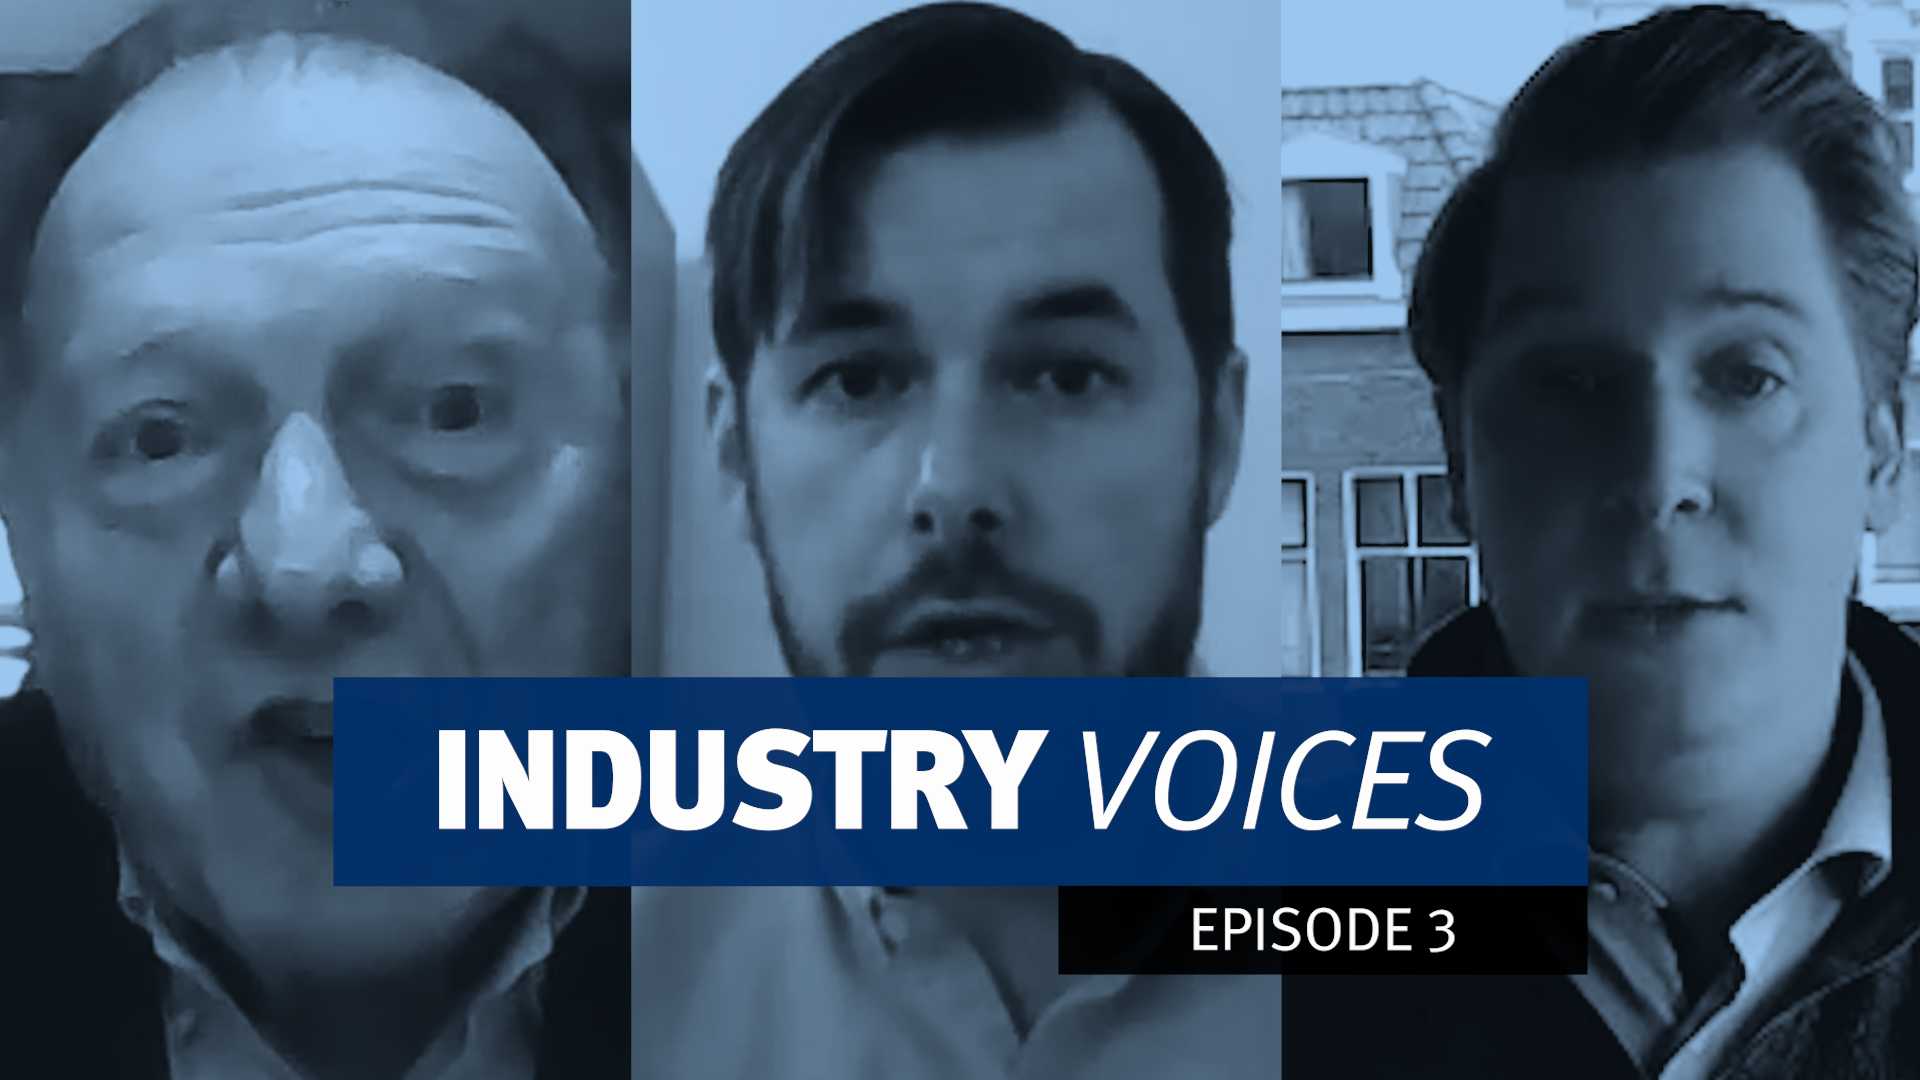 Industrial Voice